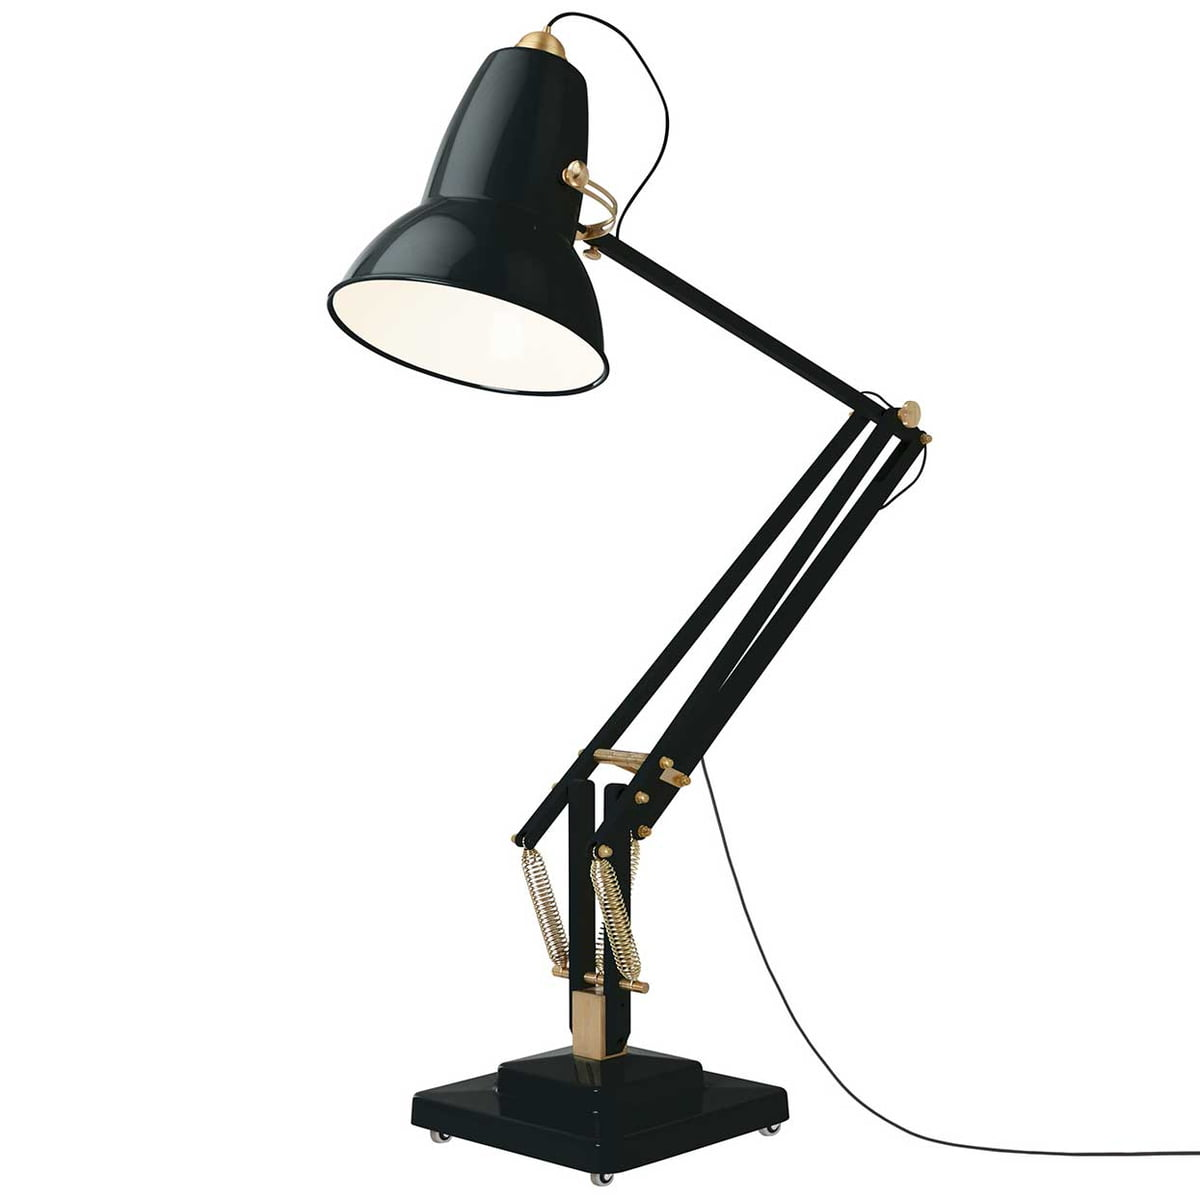 Original 1227 giant brass floor lamp by anglepoise original 1227 giant brass floor lamp cable black deep slate by anglepoise solutioingenieria Image collections